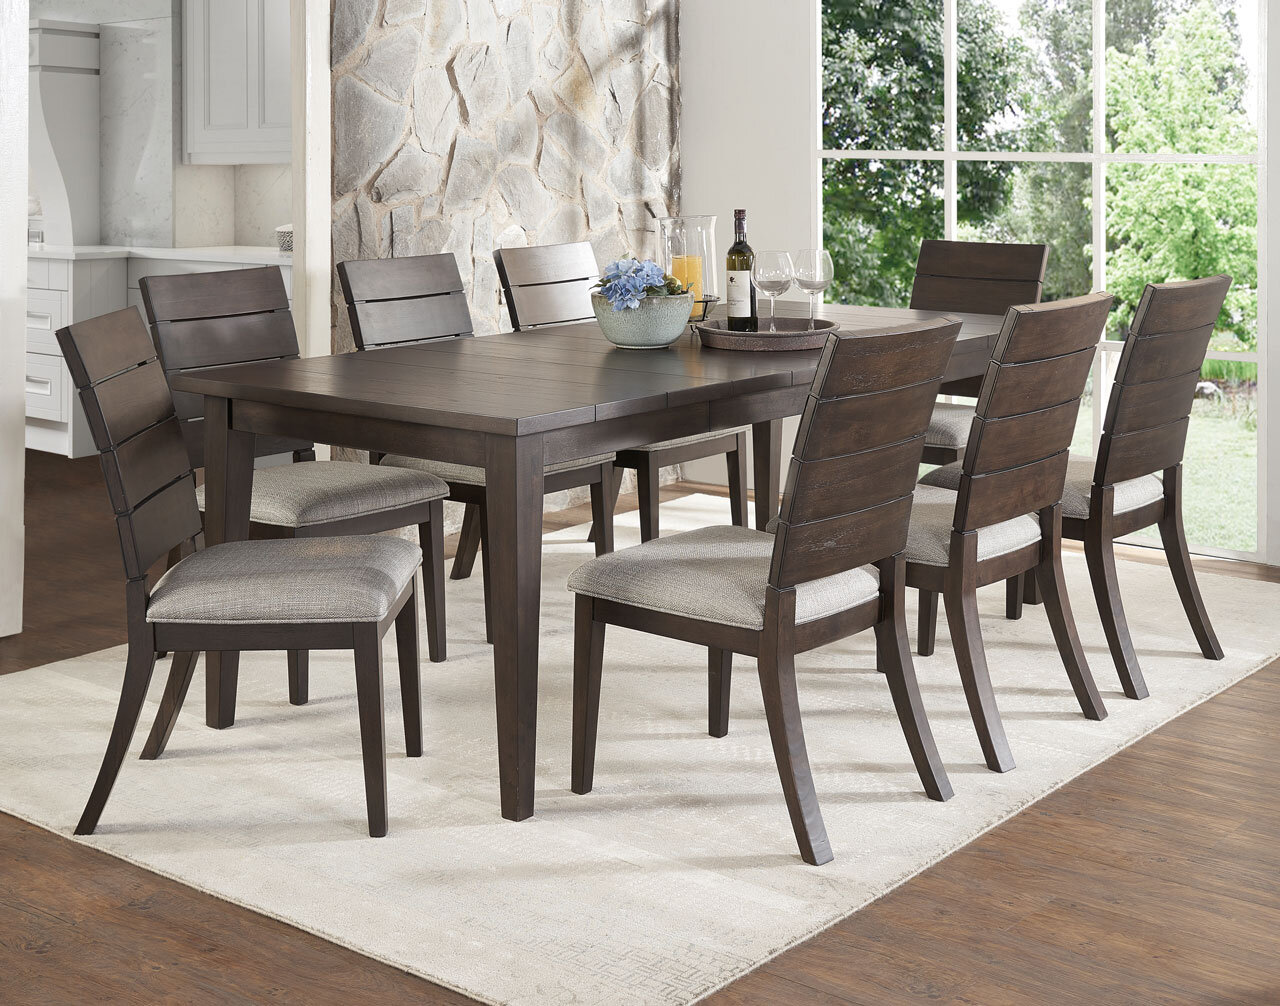 Gracie oaks wooton 9 piece extendable dining table set wayfair